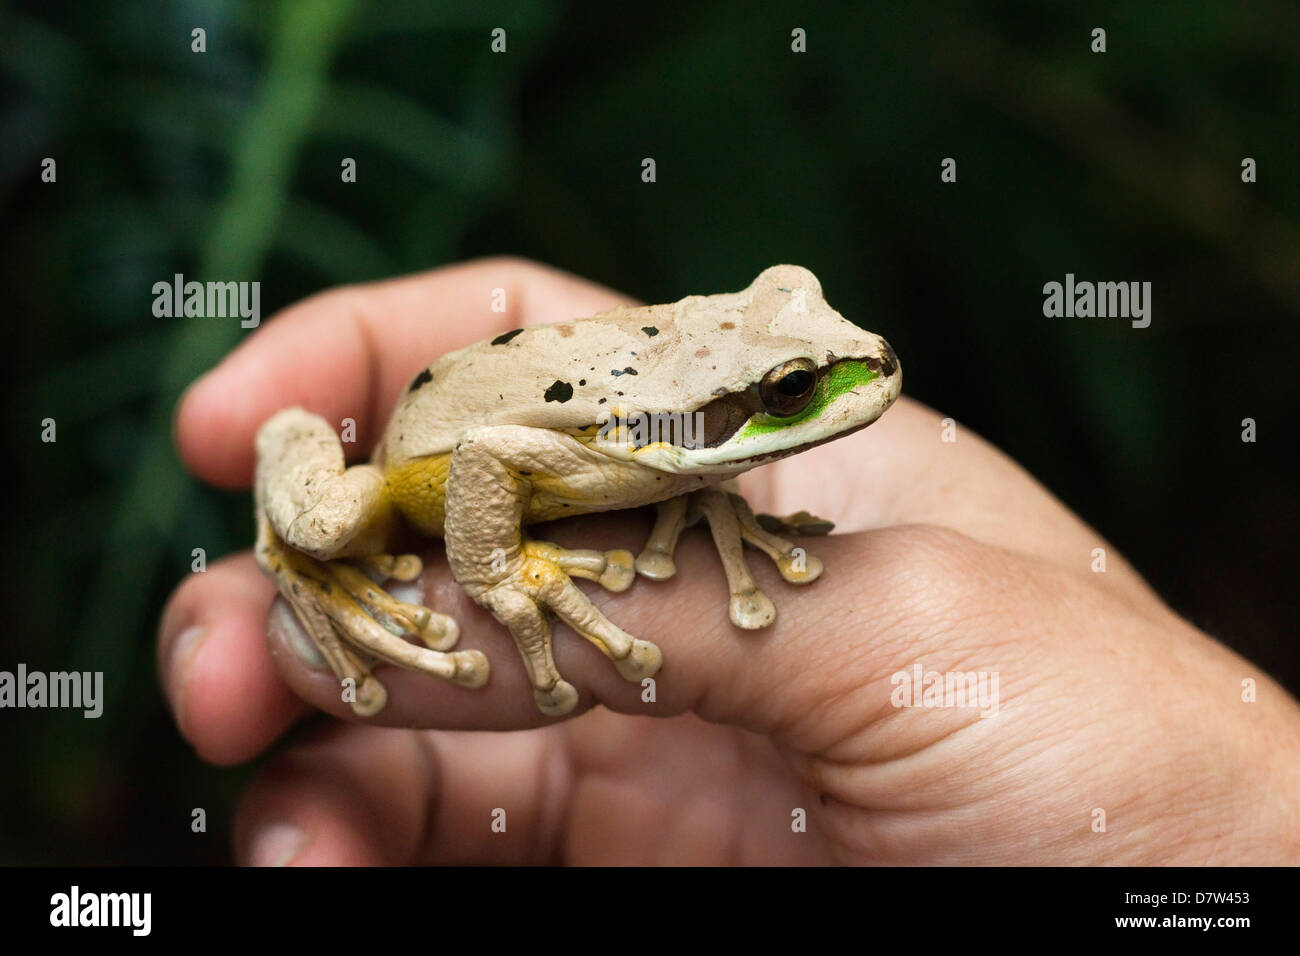 Masked tree frog (Smilisca phaeota), one of 133 species in the country, Arenal, Alajuela Province, Costa Rica - Stock Image